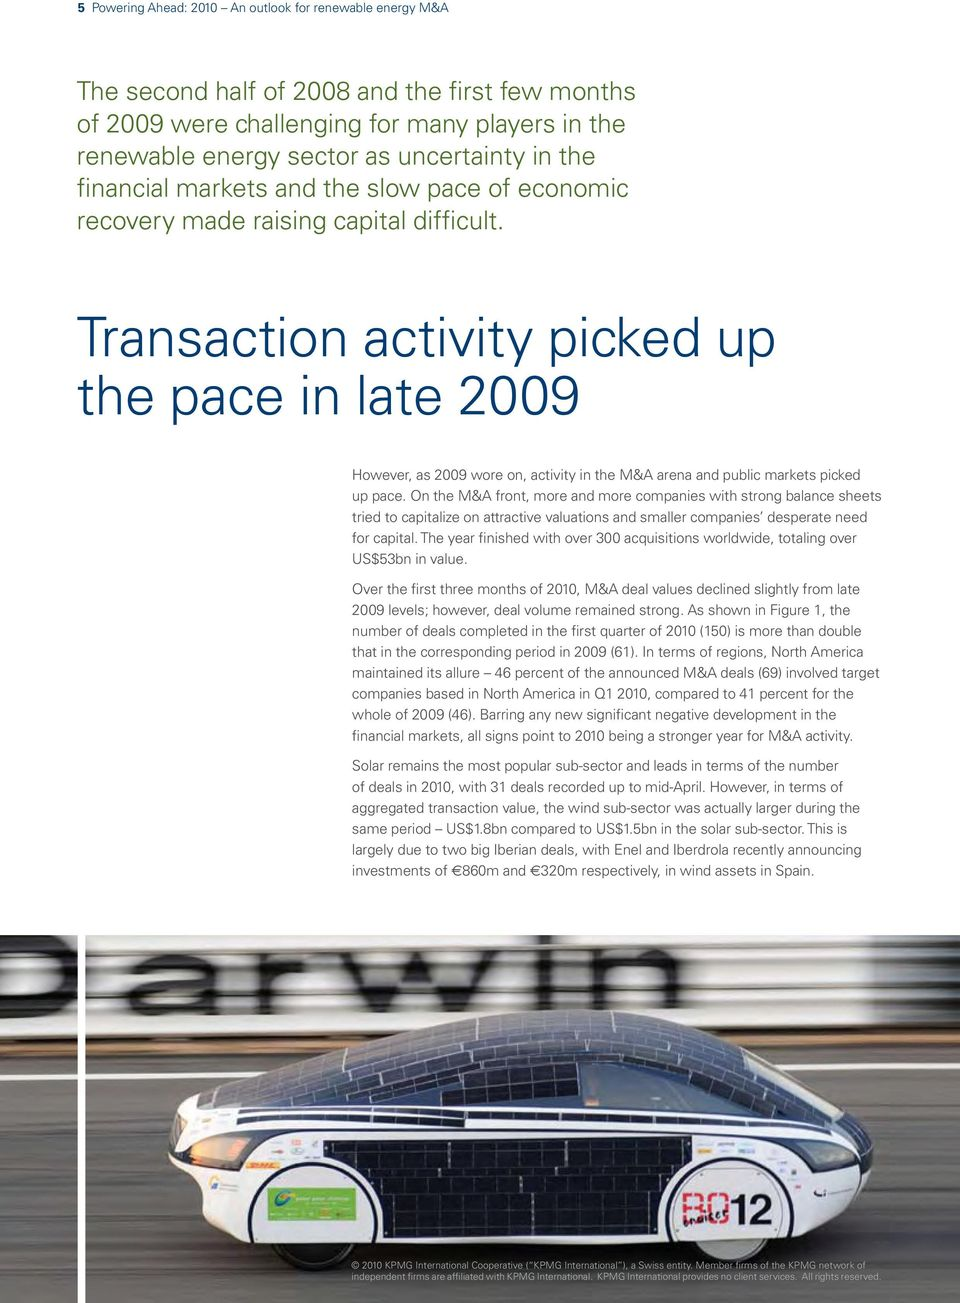 Transaction activity picked up the pace in late 2009 However, as 2009 wore on, activity in the M&A arena and public markets picked up pace.